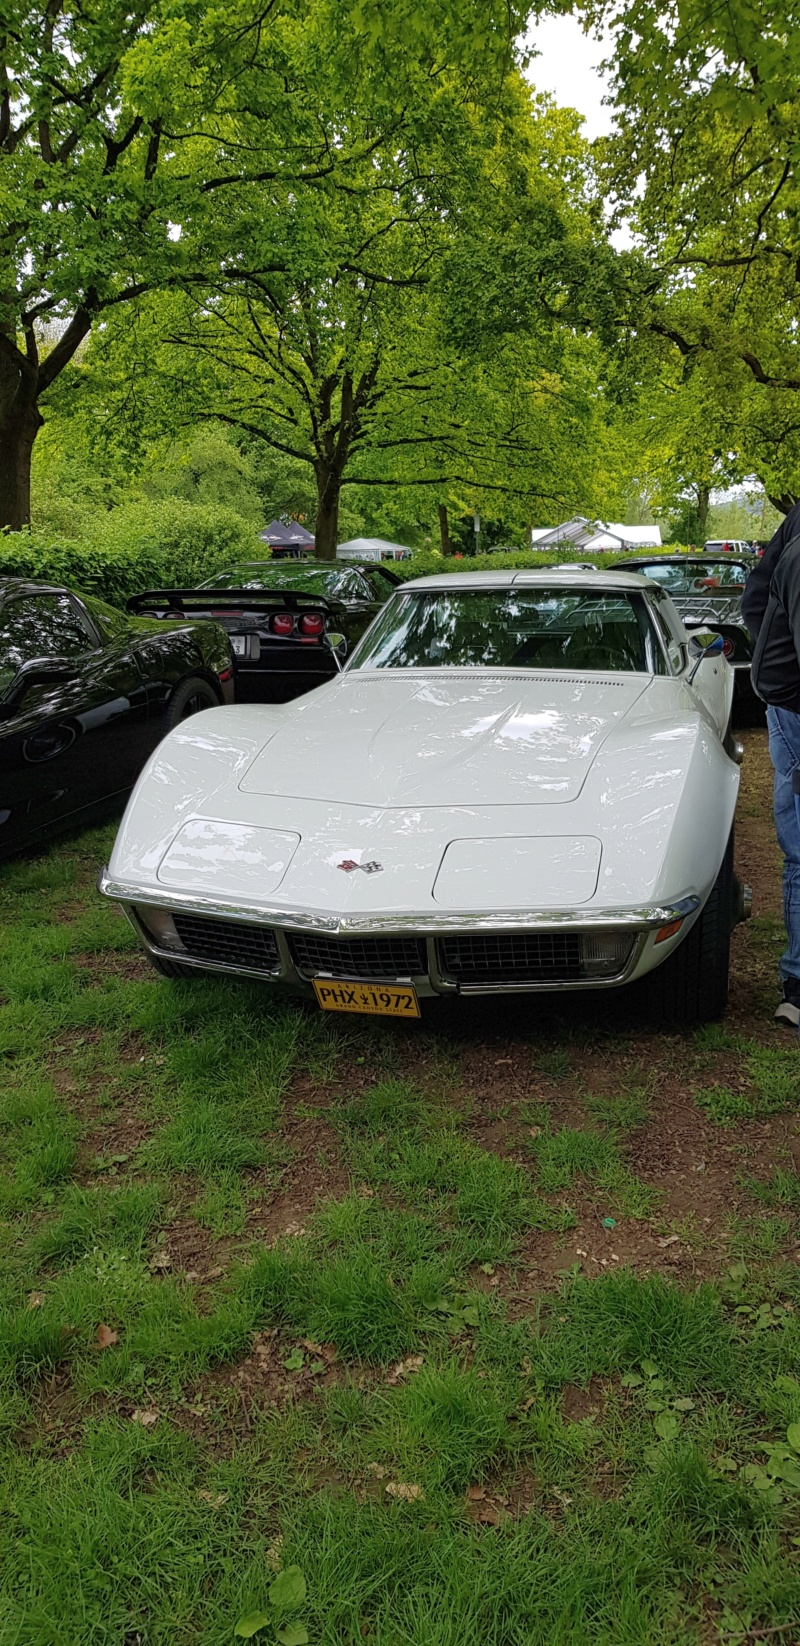 16. Corvette Sunday der Corvettenfreunde Kurpfalz in Ladenburg 5.5.2019 20190592